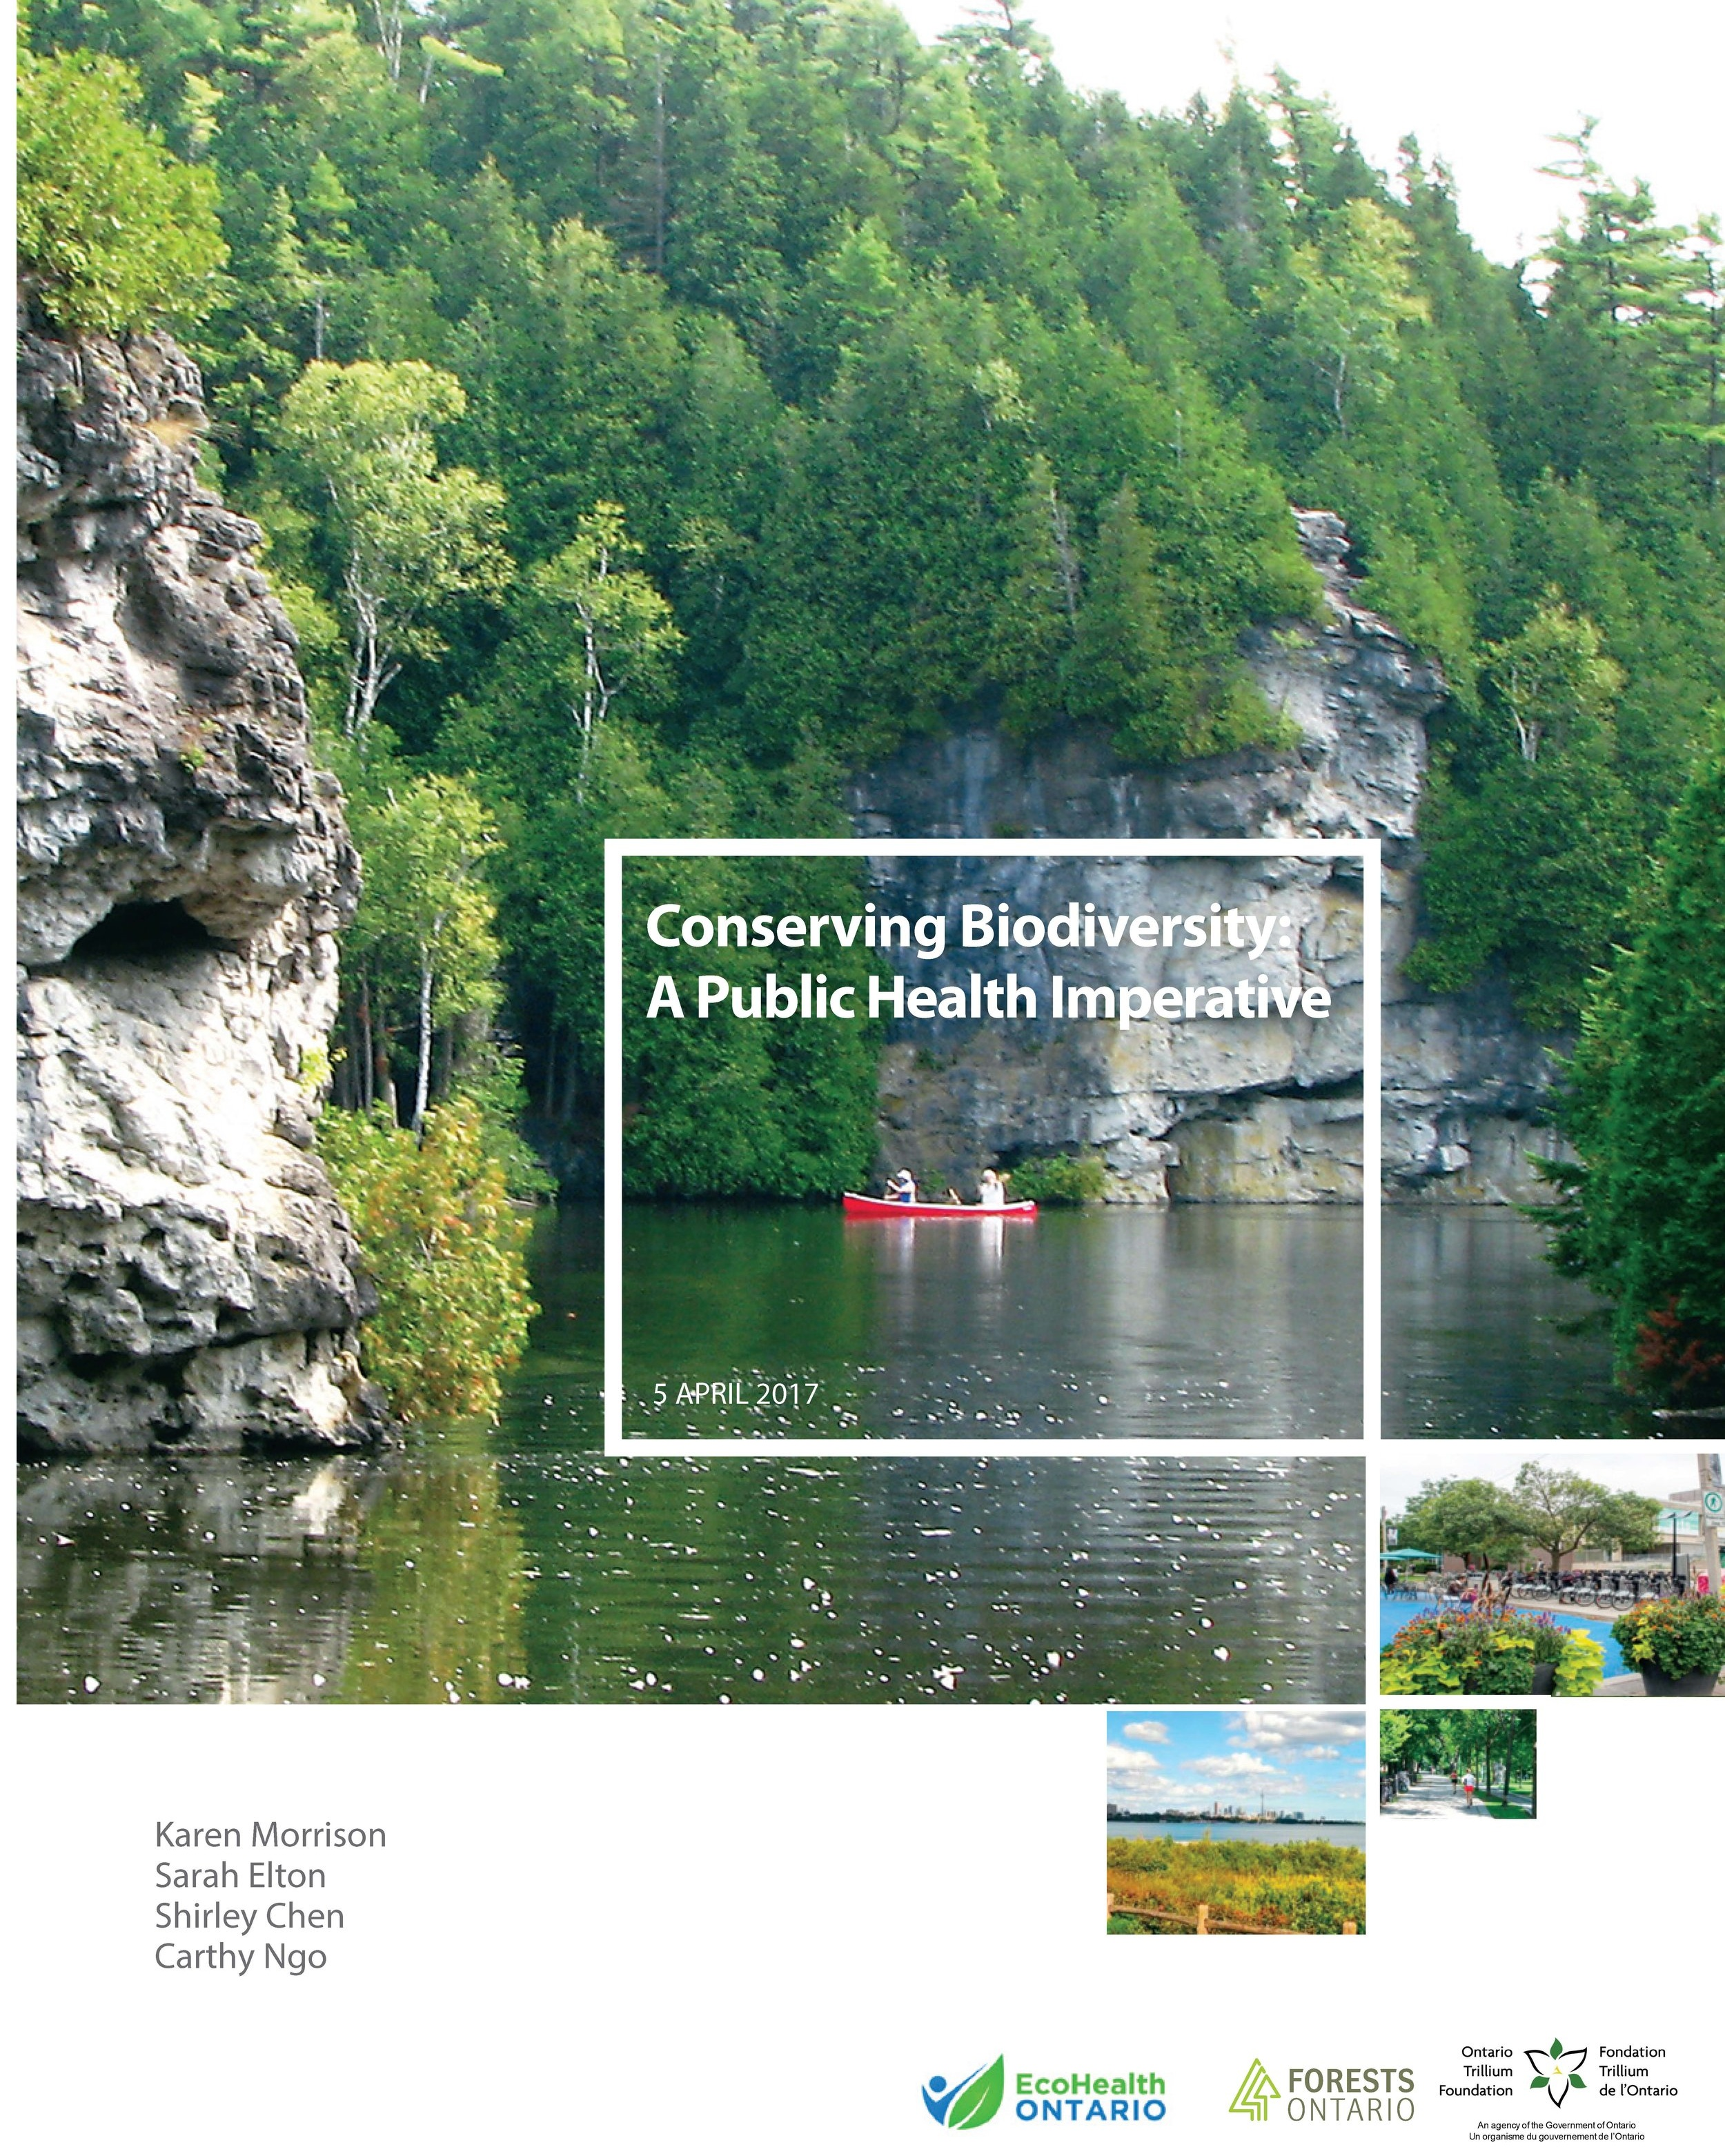 Conserving Biodiversity: A Public Health Imperative - Conserving Biodiversity: A Public Health Imperative is a report from EcoHealth Ontario that compiles information about the essential health benefits provided by biodiversity. You can view highlights from the report and read it in full at conservebiodiversity.ca.